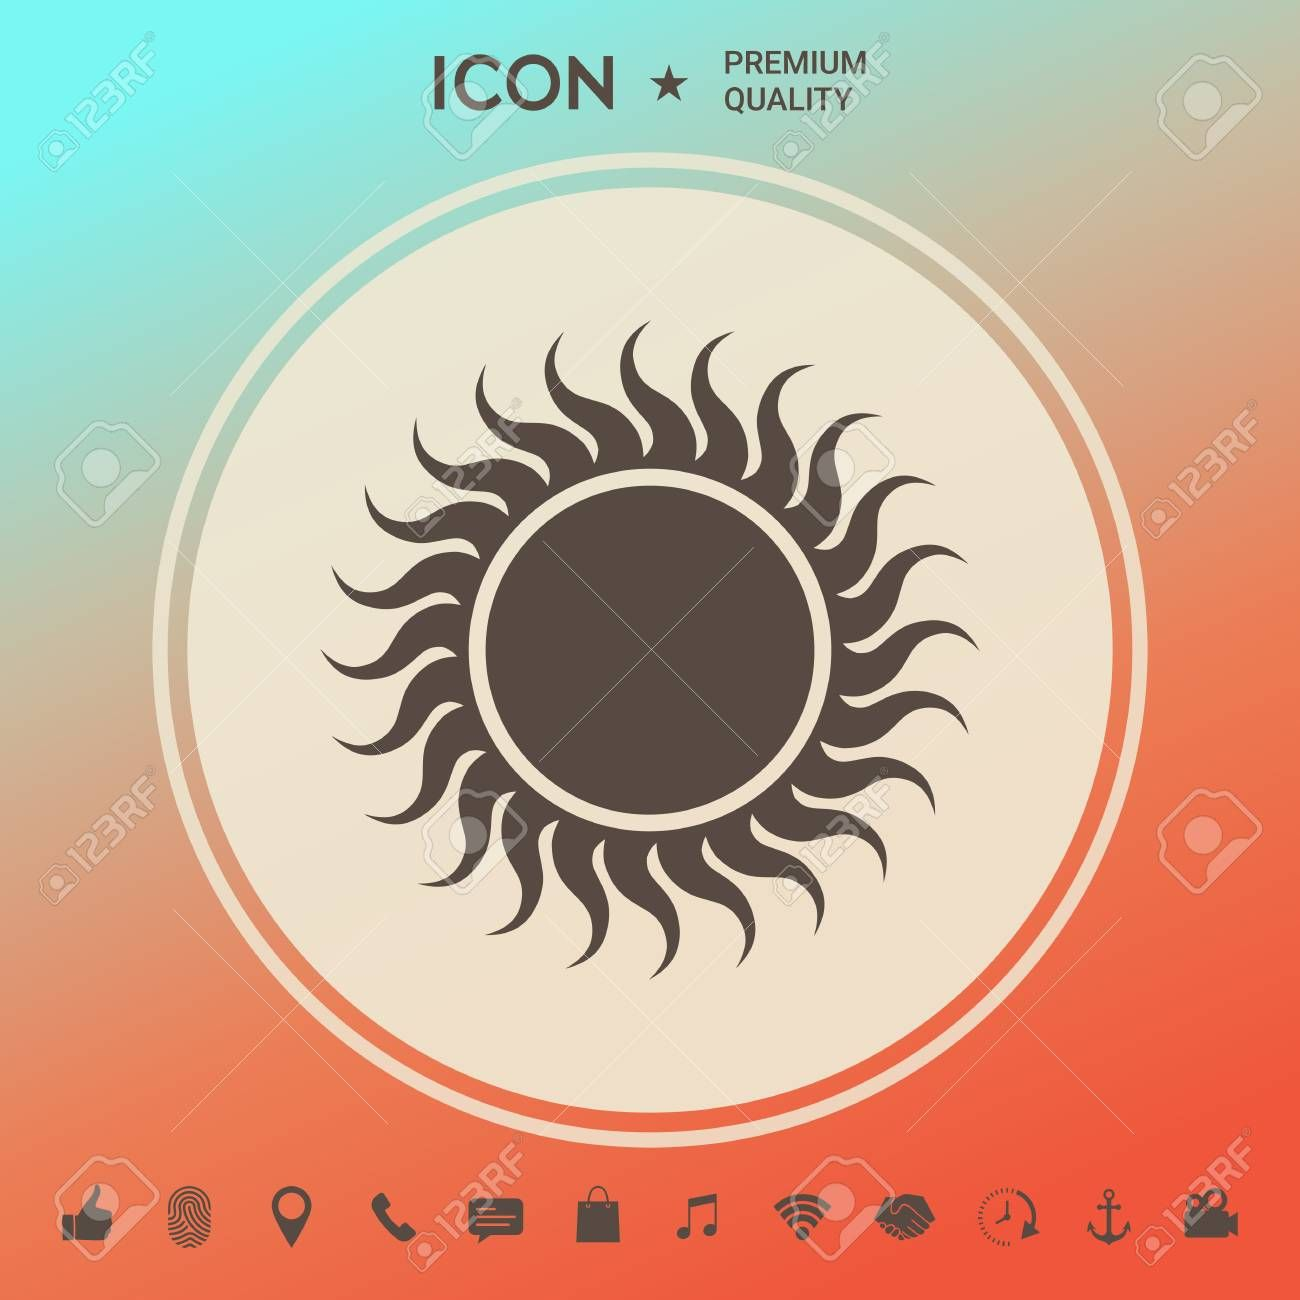 Sun icon  Signs and symbols  graphic elements for your design